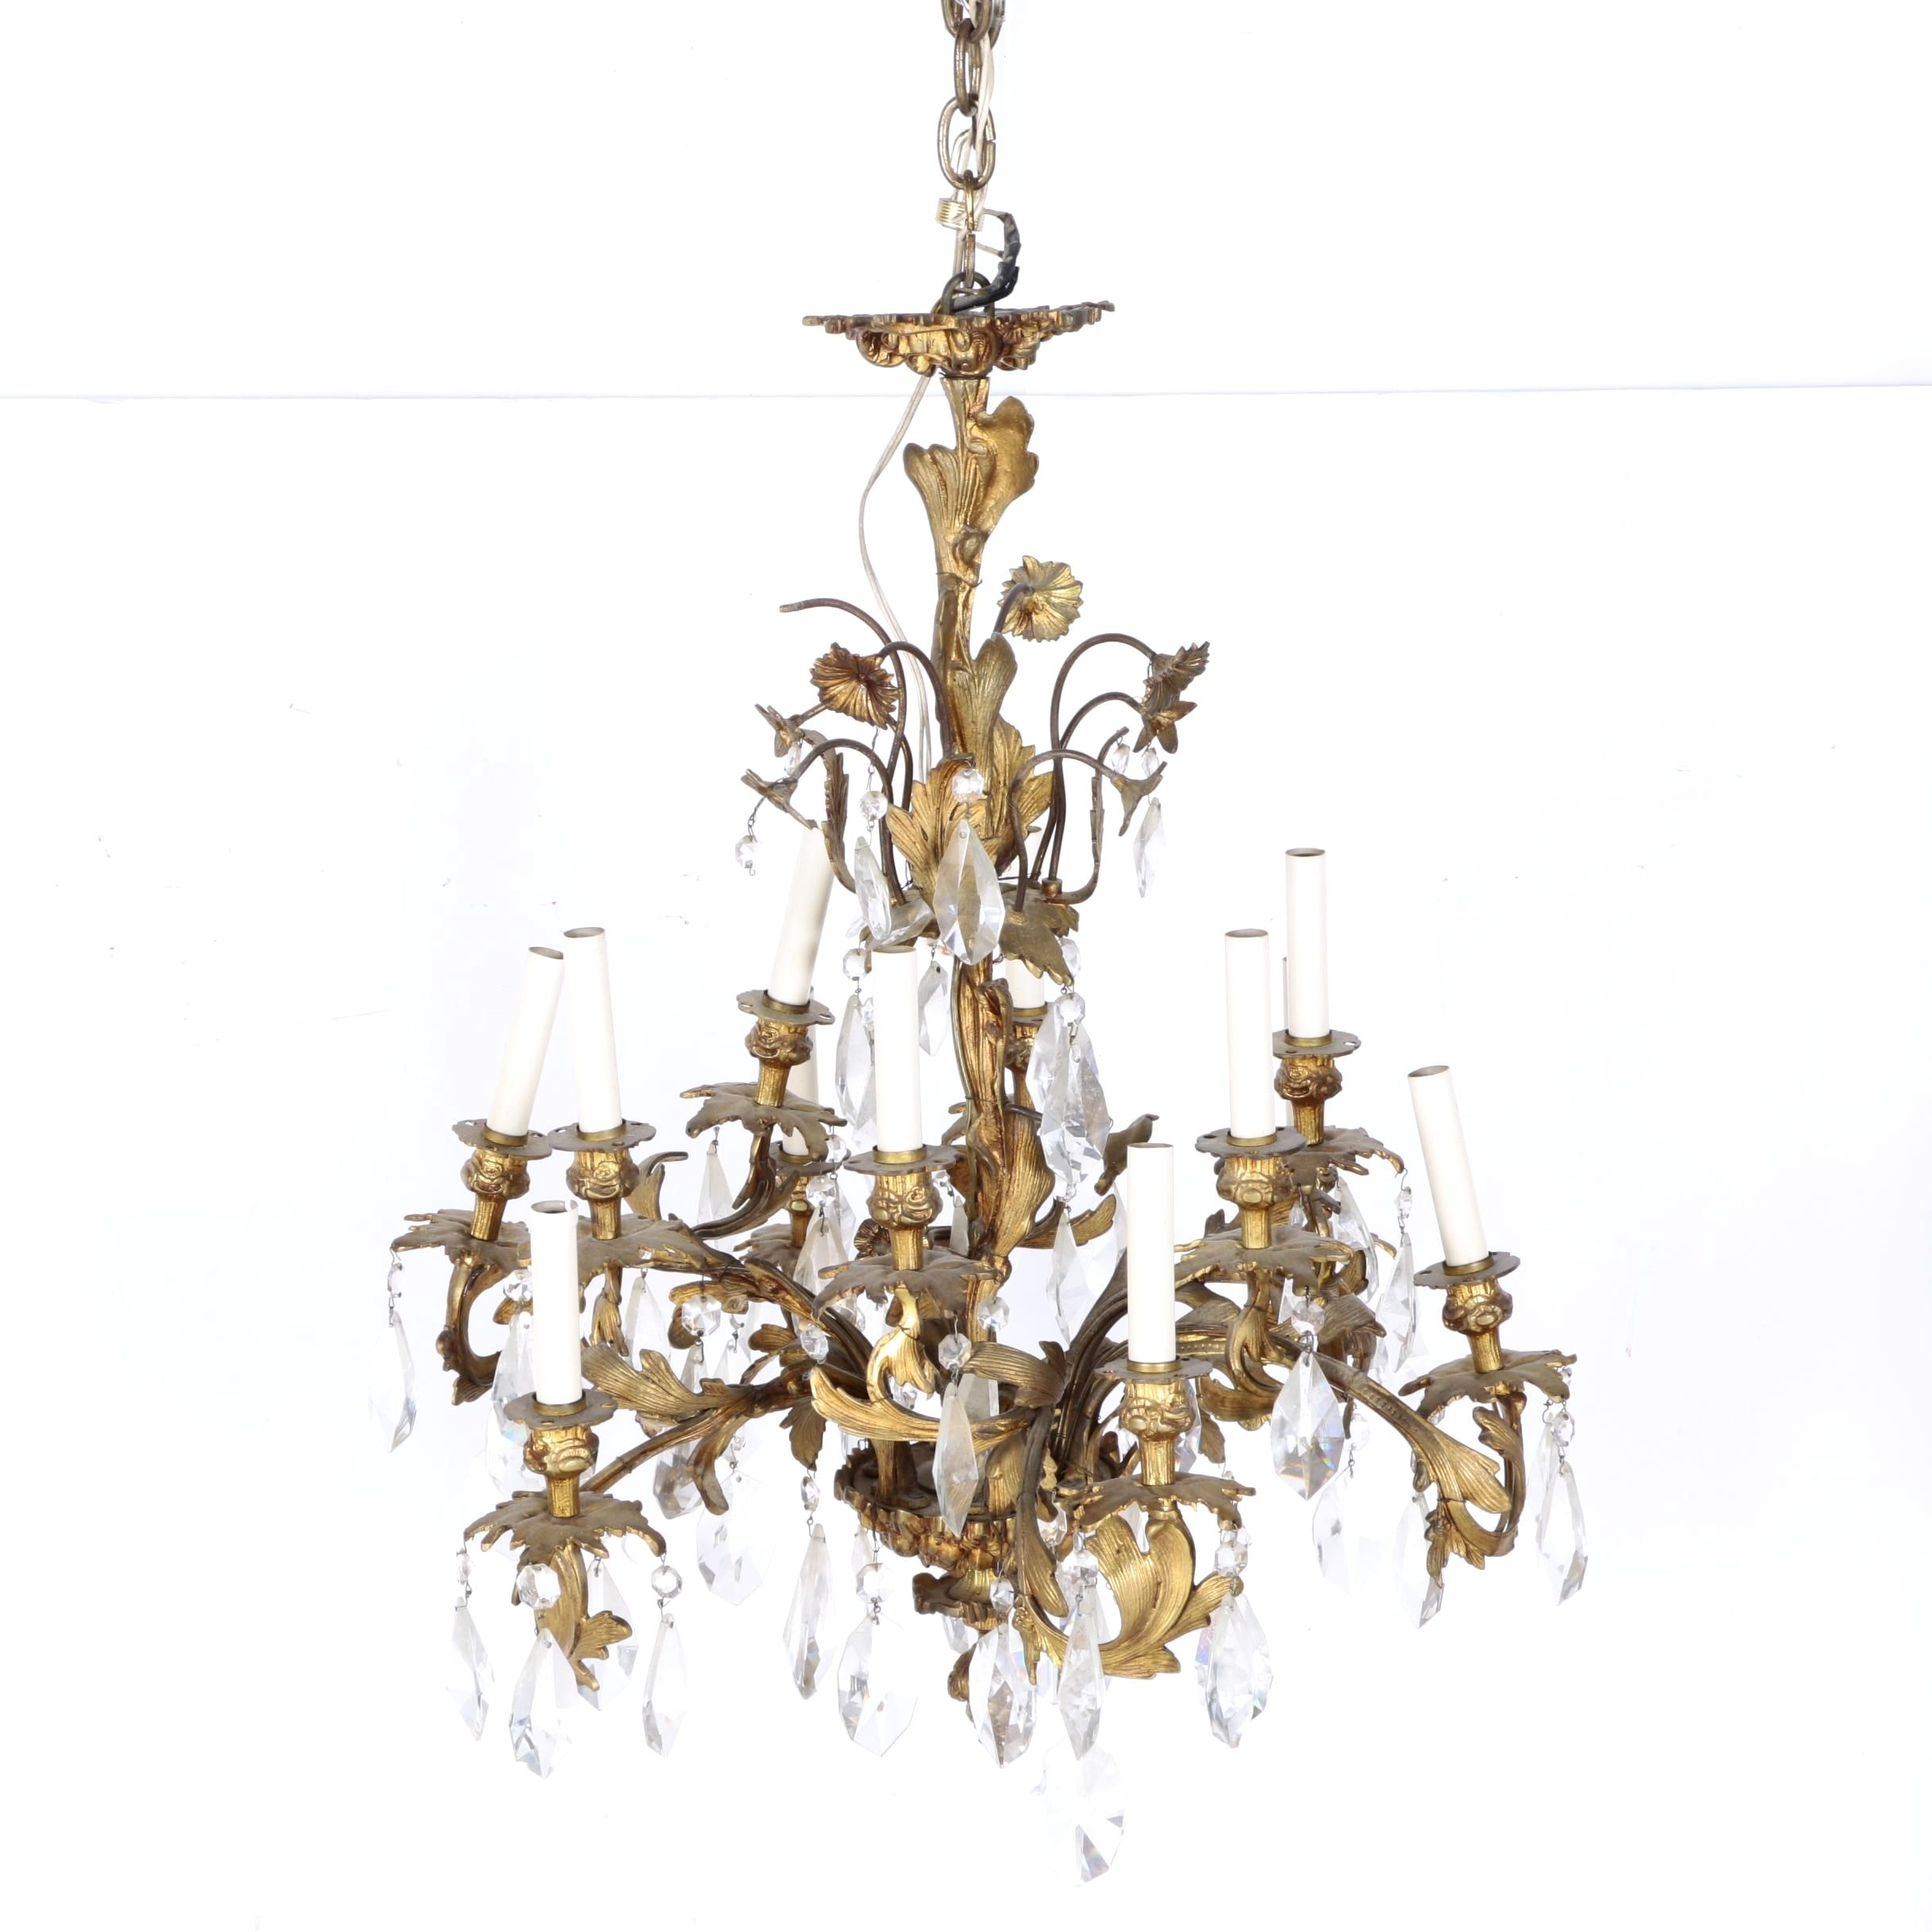 Louis XIV Rococo Style Chandelier